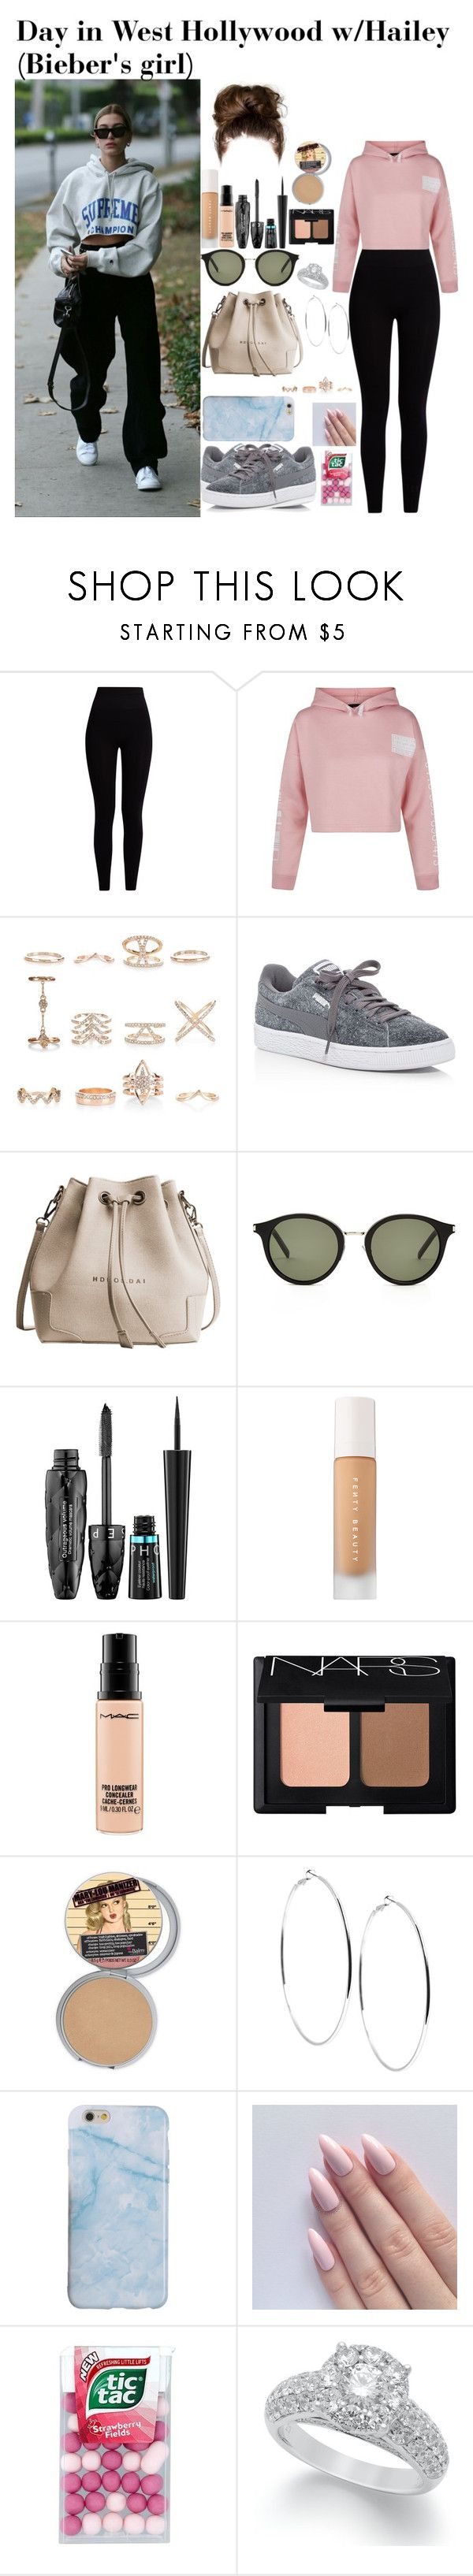 """""""Day in West Hollywood w/Hailey(Bieber's Girl)"""" by tatabranquinha ❤ liked on Polyvore featuring beauty, Pepper & Mayne, New Look, Puma, Yves Saint Laurent, Sephora Collection, MAC Cosmetics, NARS Cosmetics, GUESS and haileybaldwin"""